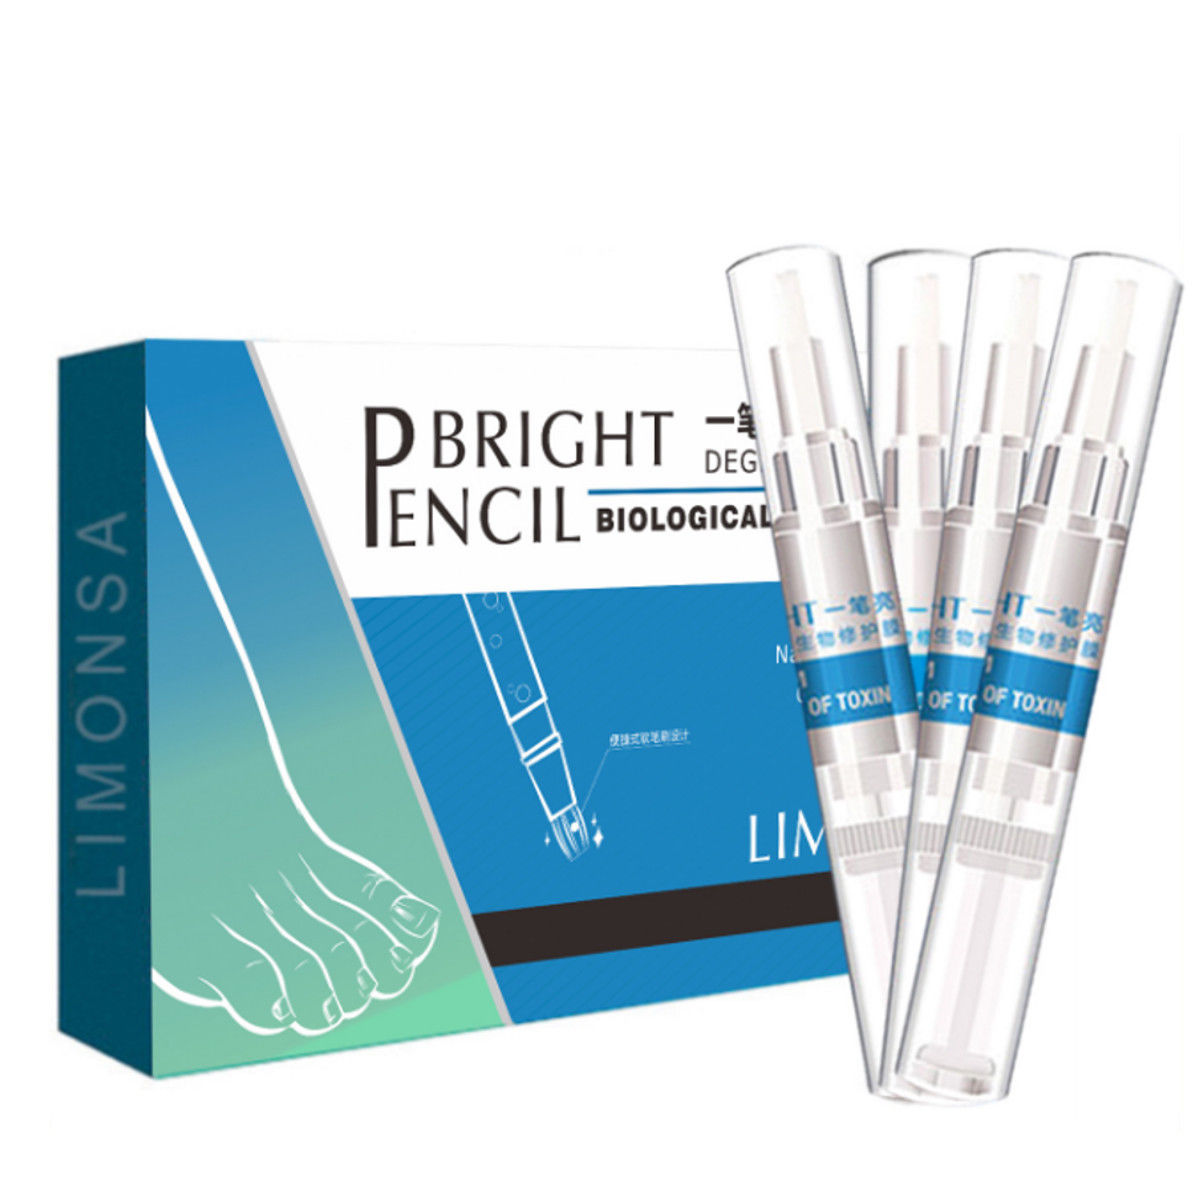 4pcs/set 3ml Solution Anti Fongique Infection Nail Bright Pencil Fungal Treatment Anti Fungus Biological Repair Restores Healthy4pcs/set 3ml Solution Anti Fongique Infection Nail Bright Pencil Fungal Treatment Anti Fungus Biological Repair Restores Healthy